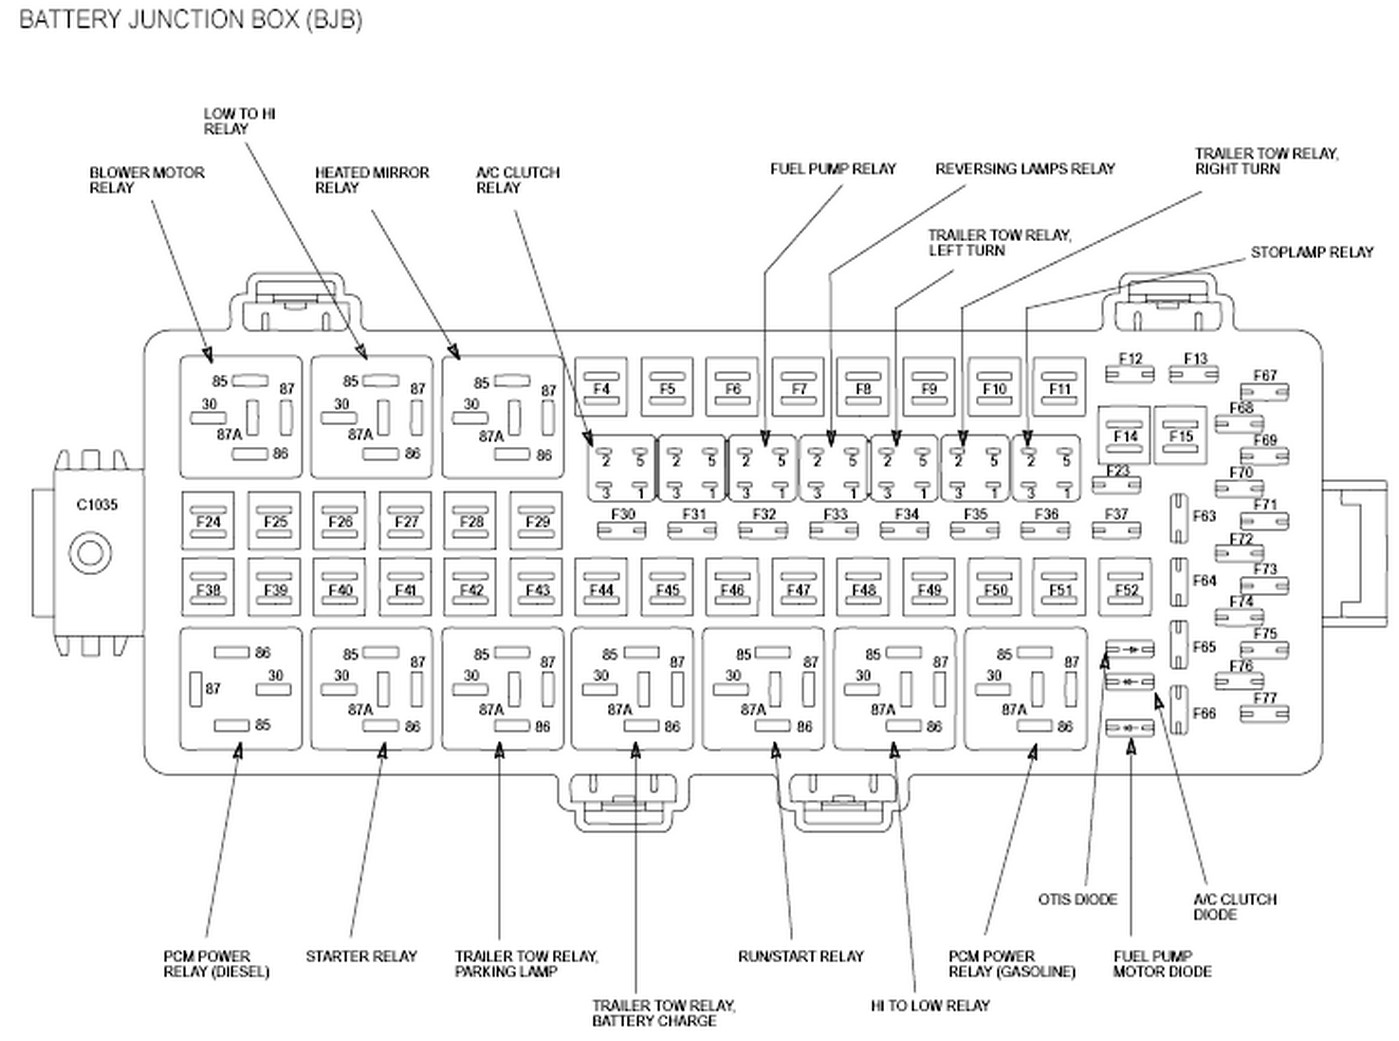 2003 F 250 5 4 Fuse Box - Typical Pool Light Wiring Diagram for Wiring  Diagram SchematicsWiring Diagram Schematics